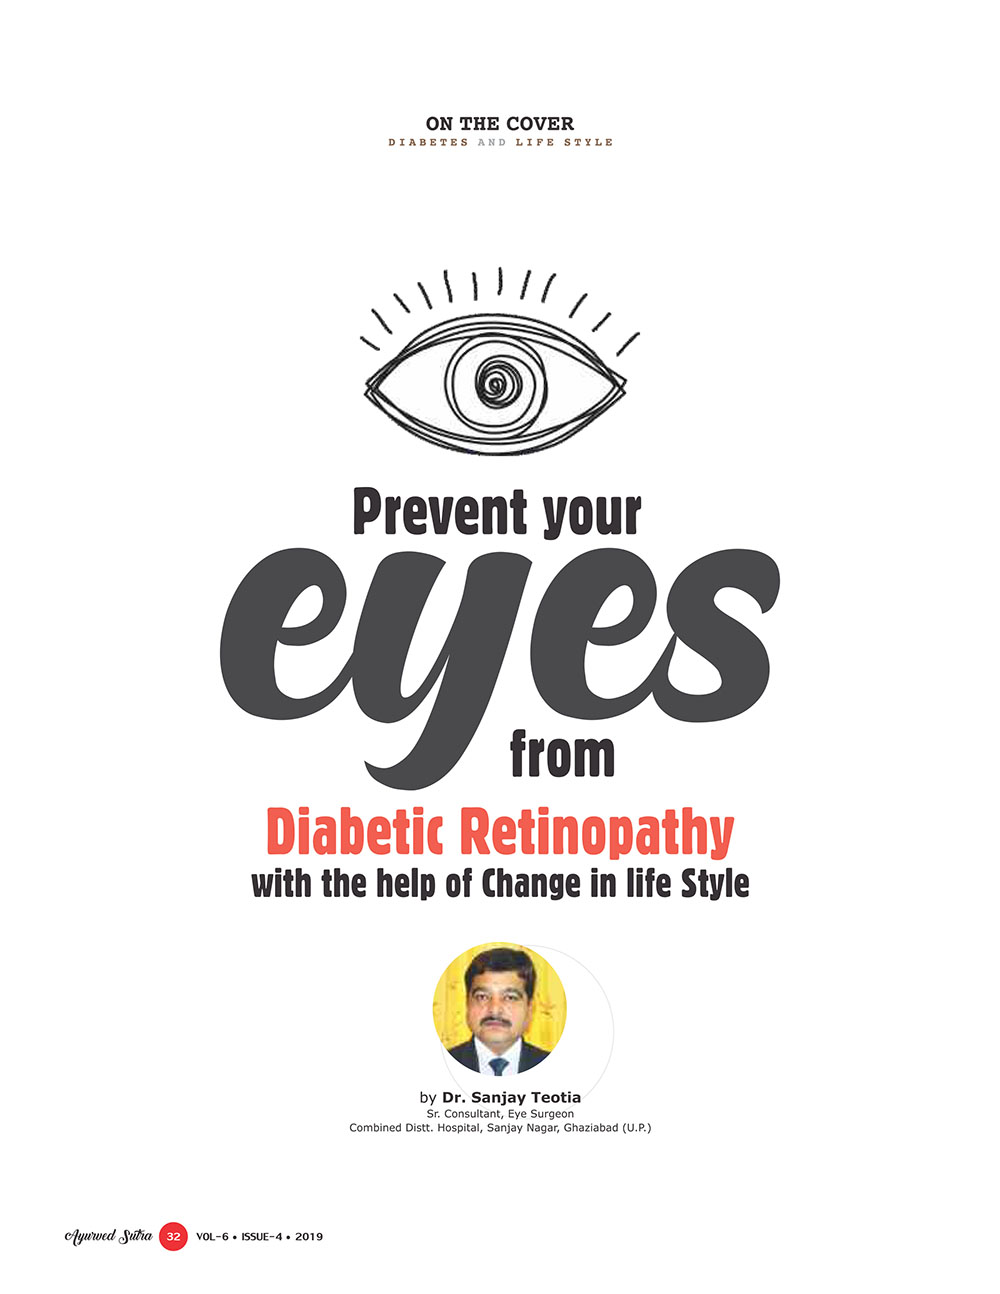 Ayurvedsutra Vol 06 issue 04 34 - You can prevent Diabetic retinopathy if you change your lifestyle